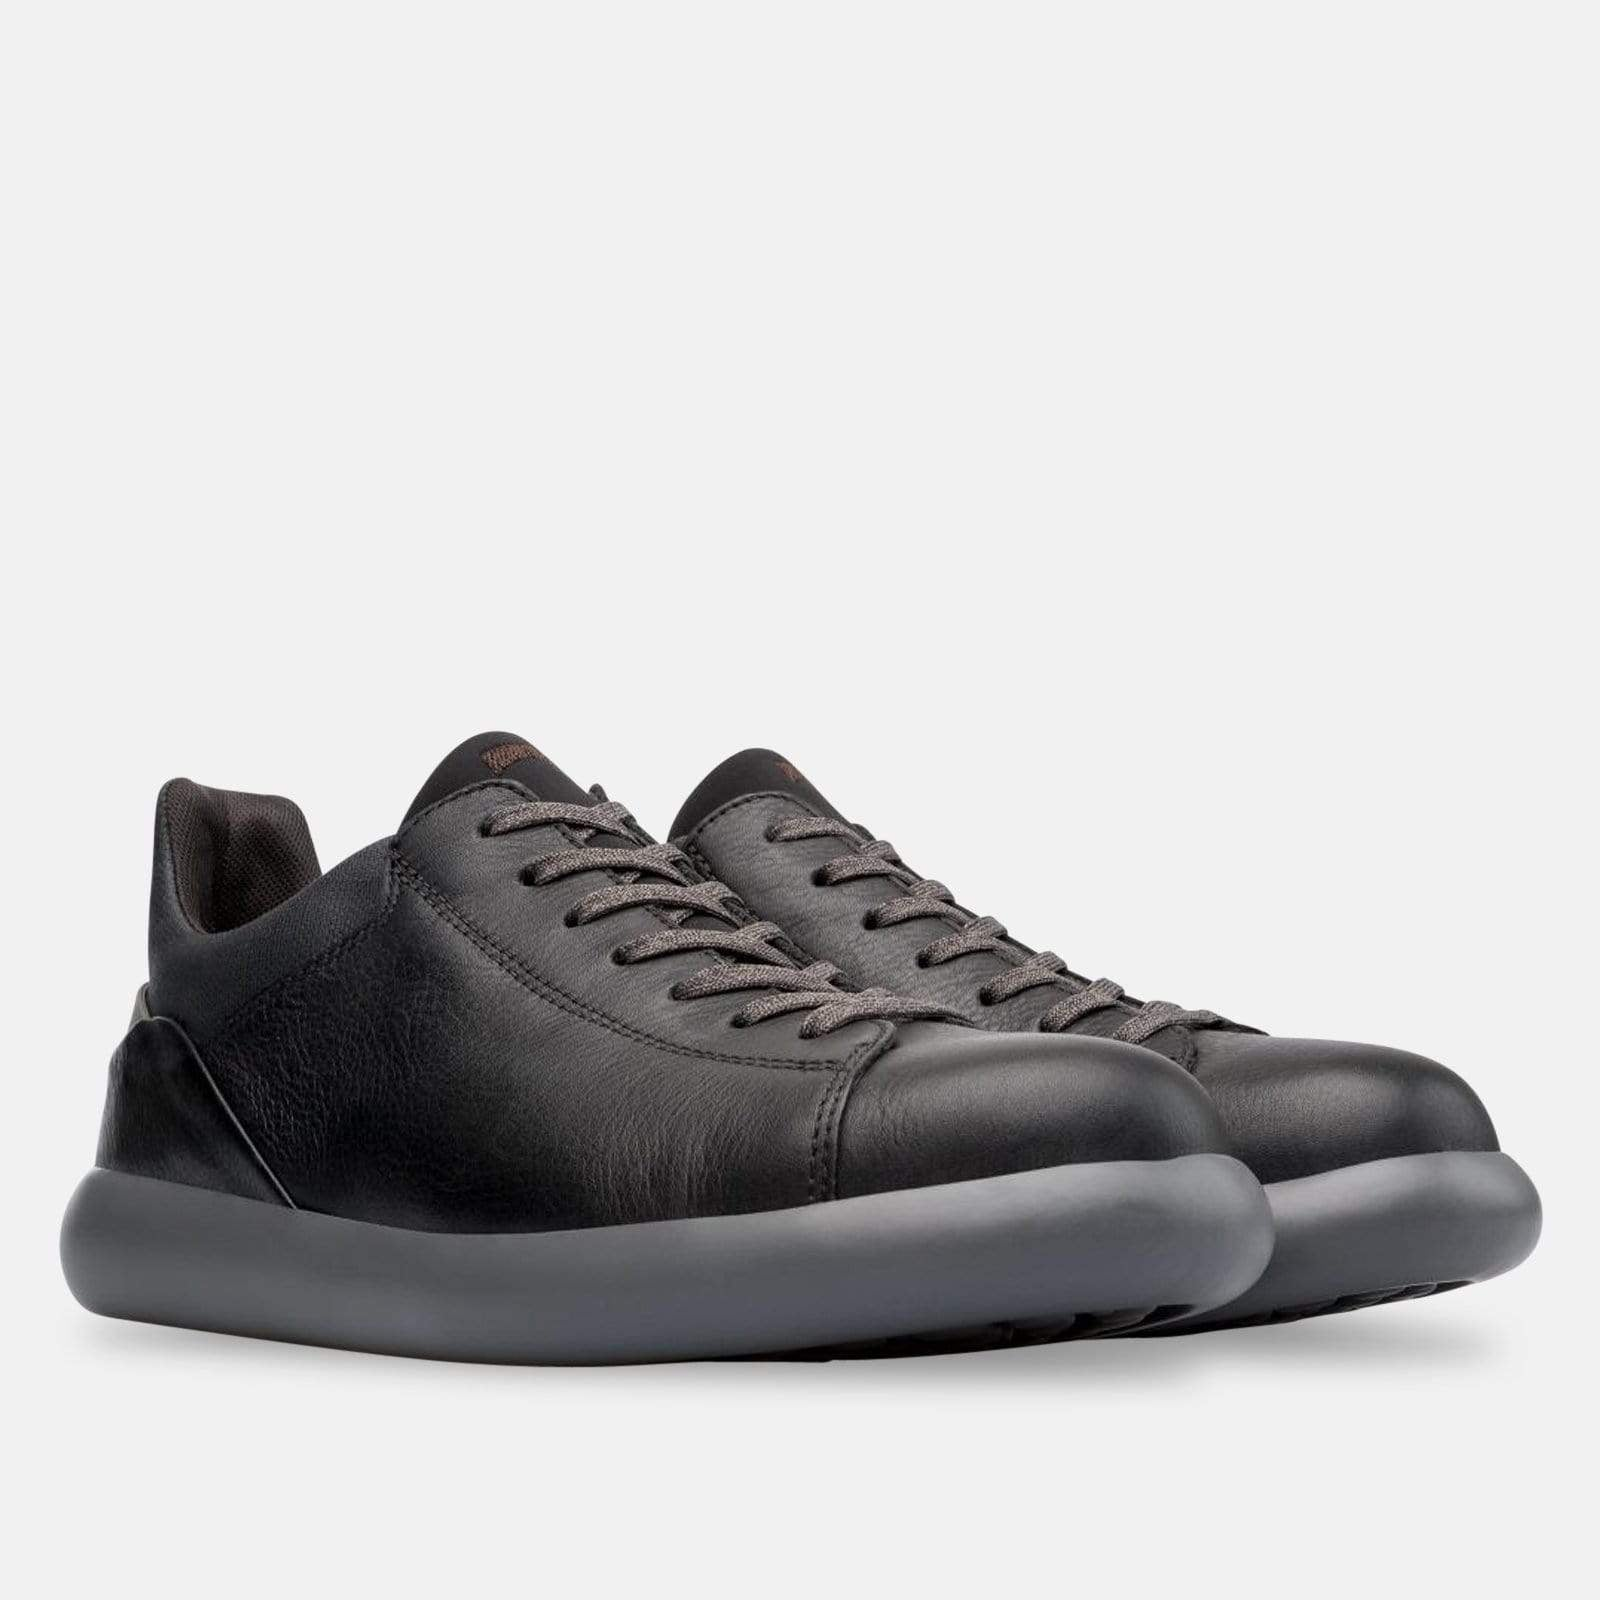 Camper Footwear Men's Black Capsule - K100374-001